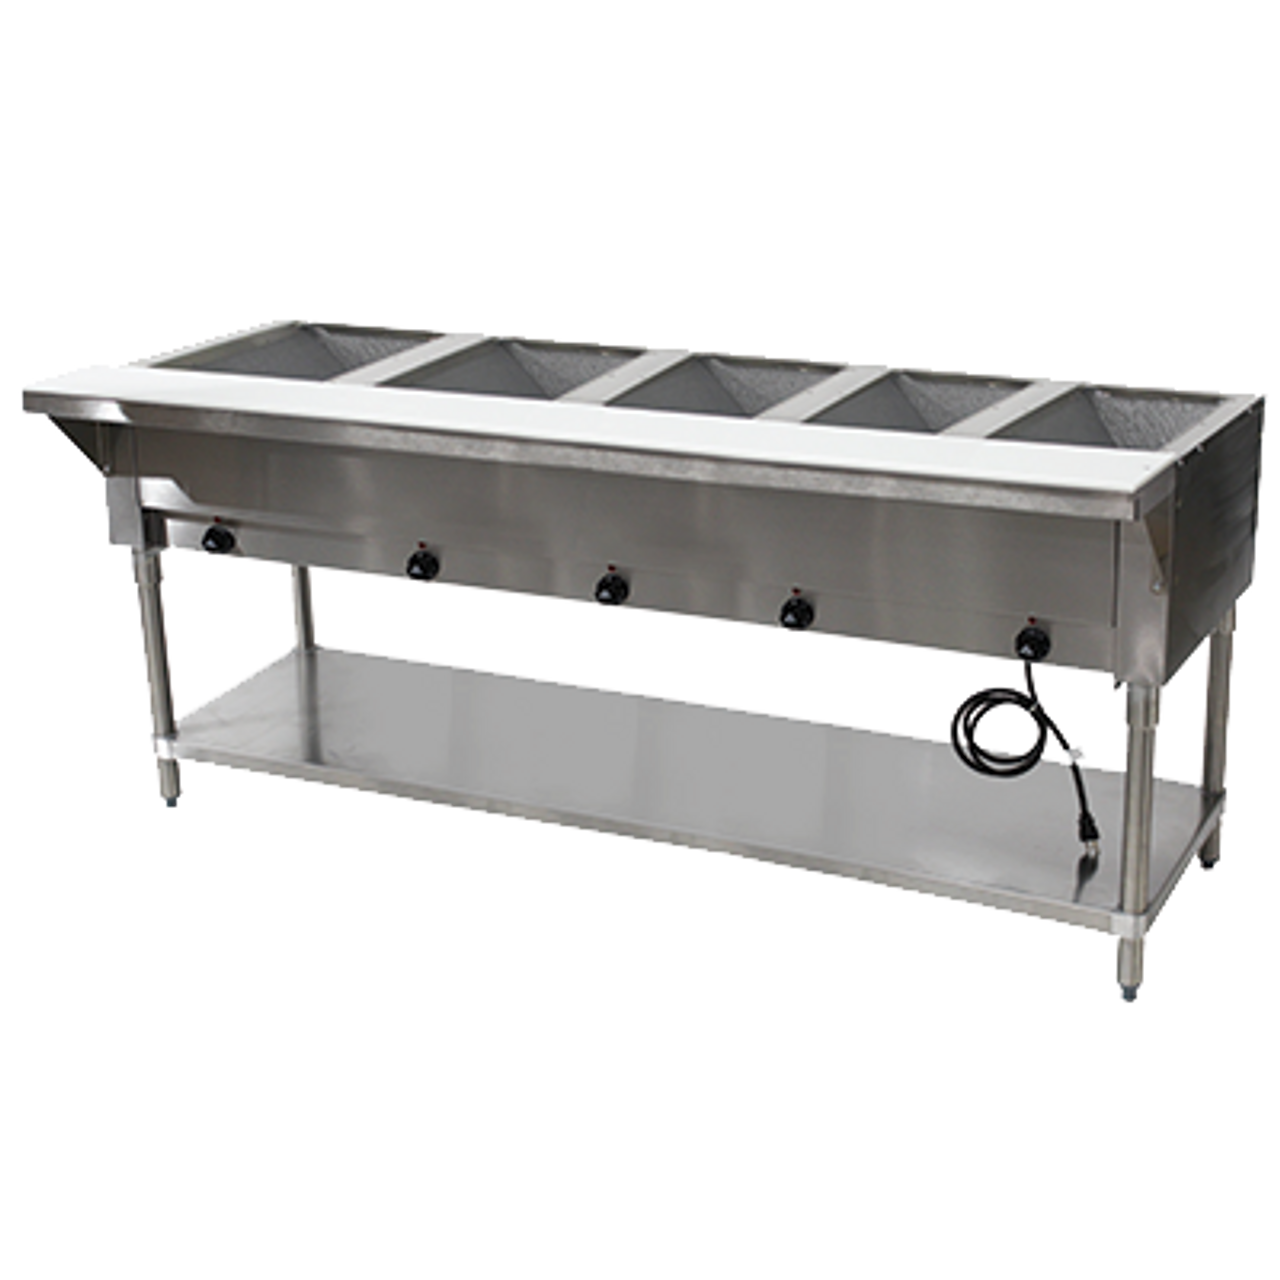 """Hot Food Table, electric, 77-3/4""""W x 30-5/8""""D x 34-3/8""""H, (5) 12"""" x 20"""" wells (accommodates pan inserts up to 7-3/4"""" deep), individual infinite controls, stainless steel top,  stainless steel 8""""D support shelf with removable 3/8"""" thick poly cutting board, galvanized open base with undershelf, UL, NSF (208-240v)"""